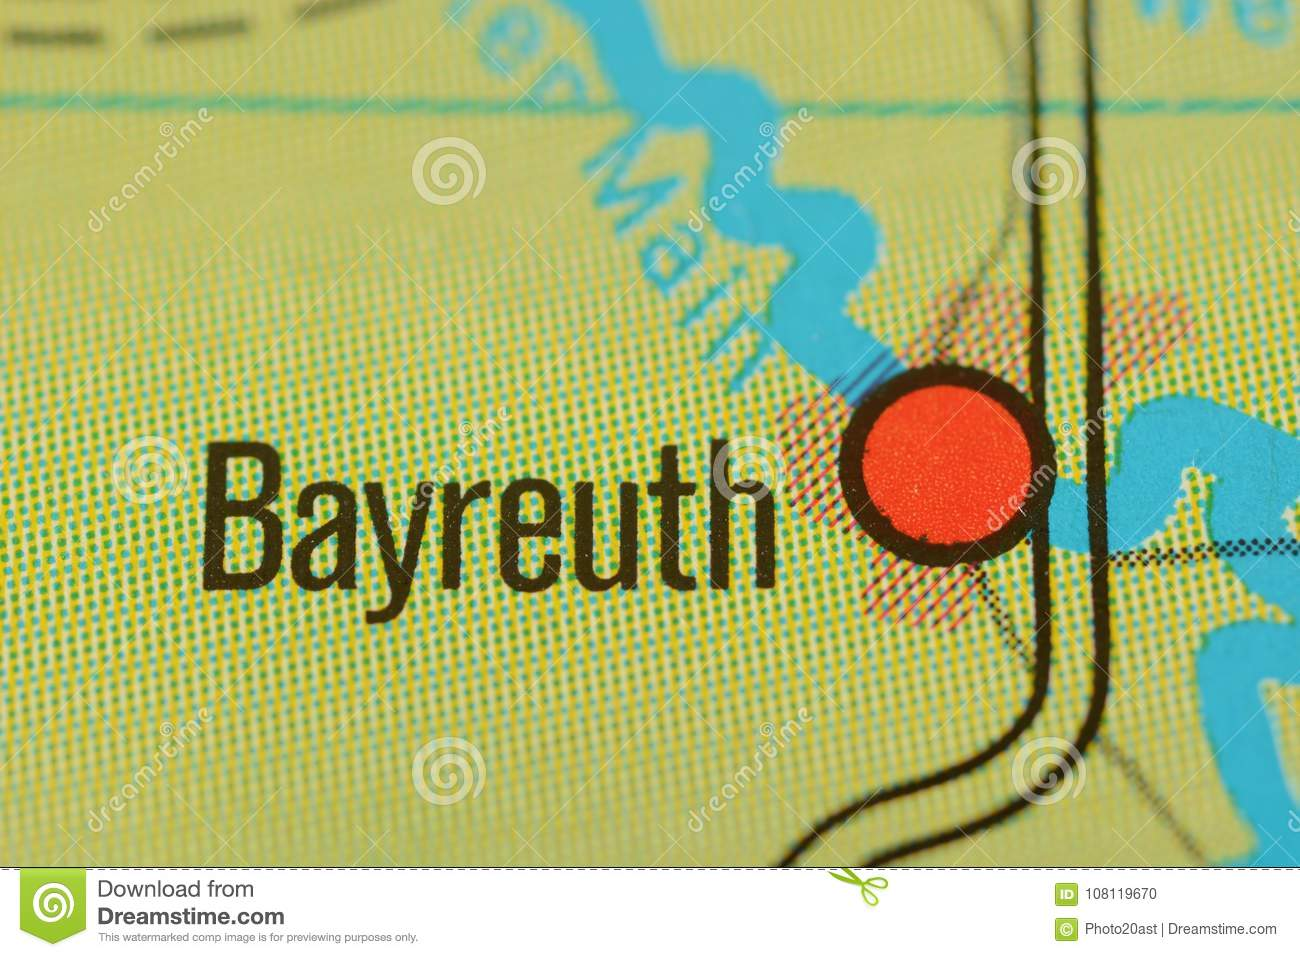 The Word Bayreuth On The Map Stock Photo Image Of Picture City